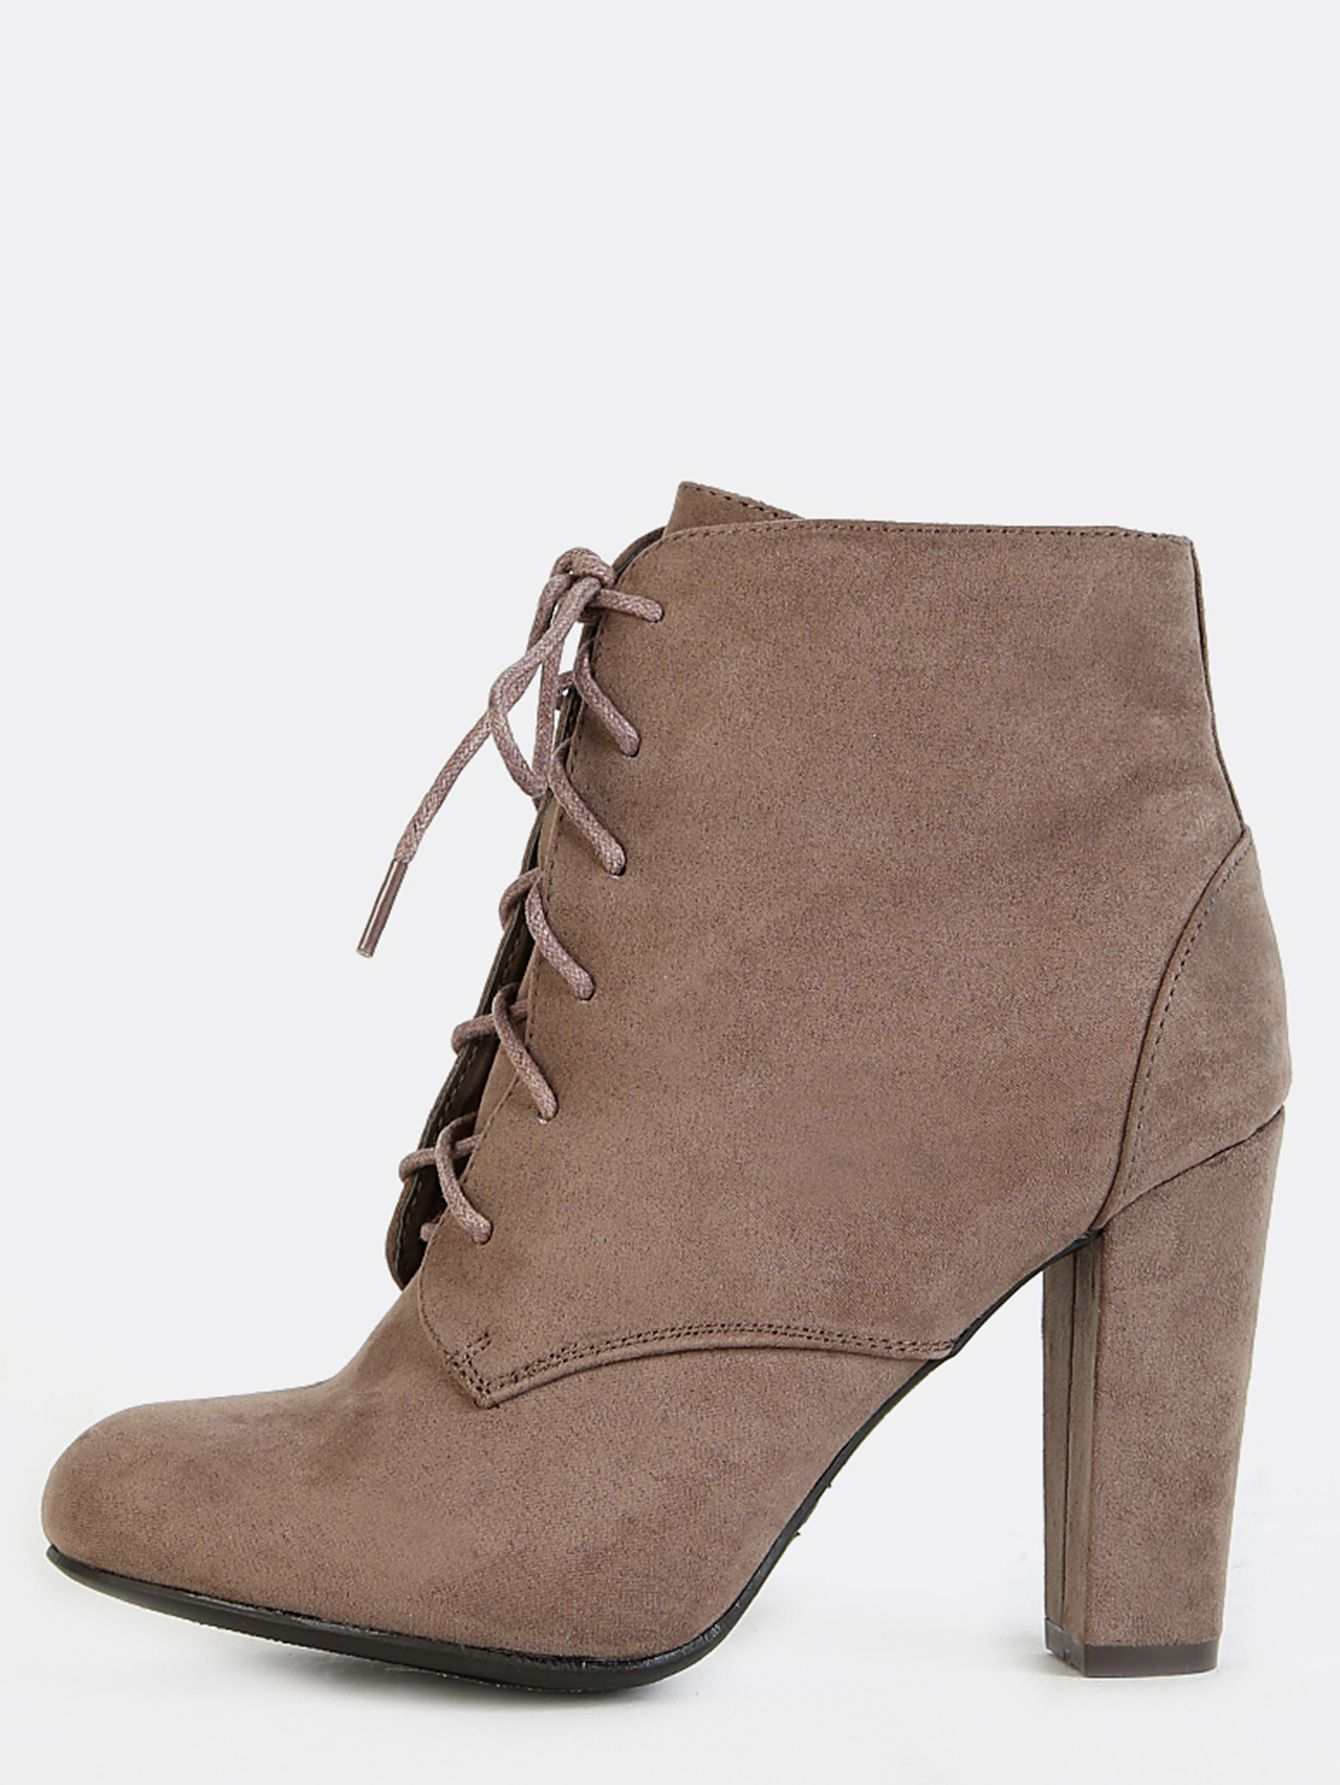 abf324d863ca  AdoreWe  SheIn Boots - SheIn Faux Suede Lace Up Booties TAUPE - AdoreWe.